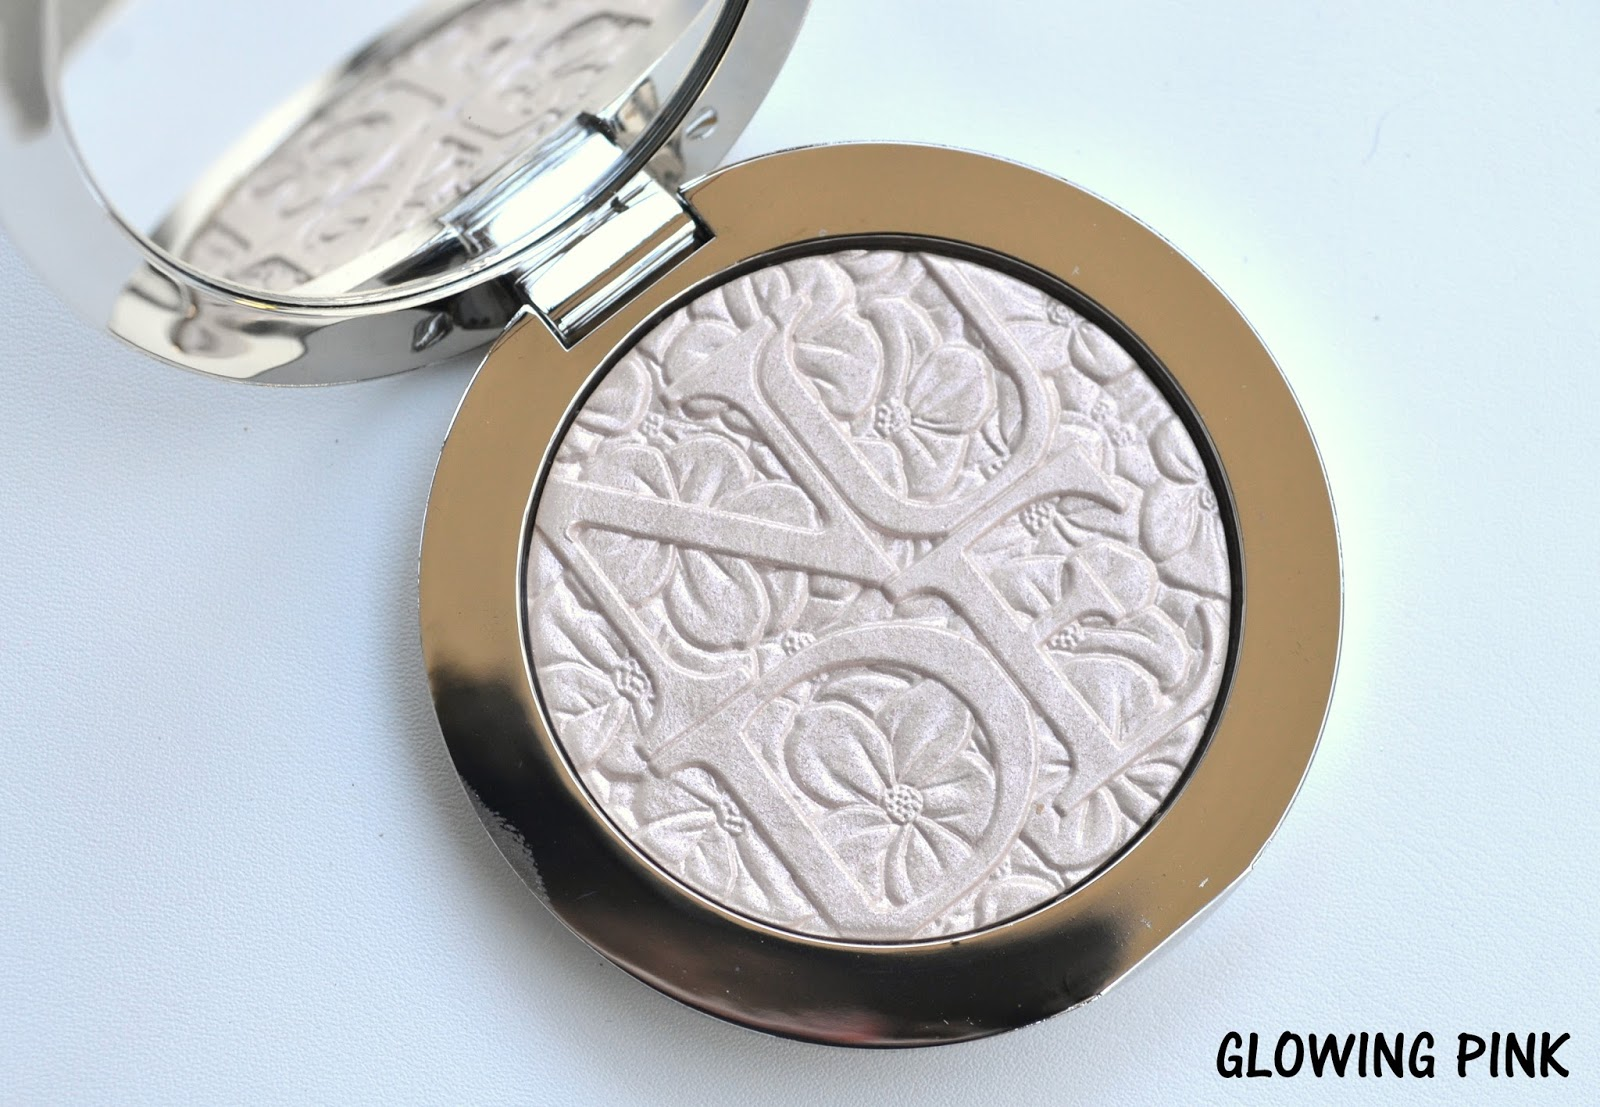 MAKEUP | Diorskin Nude Air Glowing Gardens Illuminating Powder in Glowing  Pink and Glowing Nude (Review & Swatches)